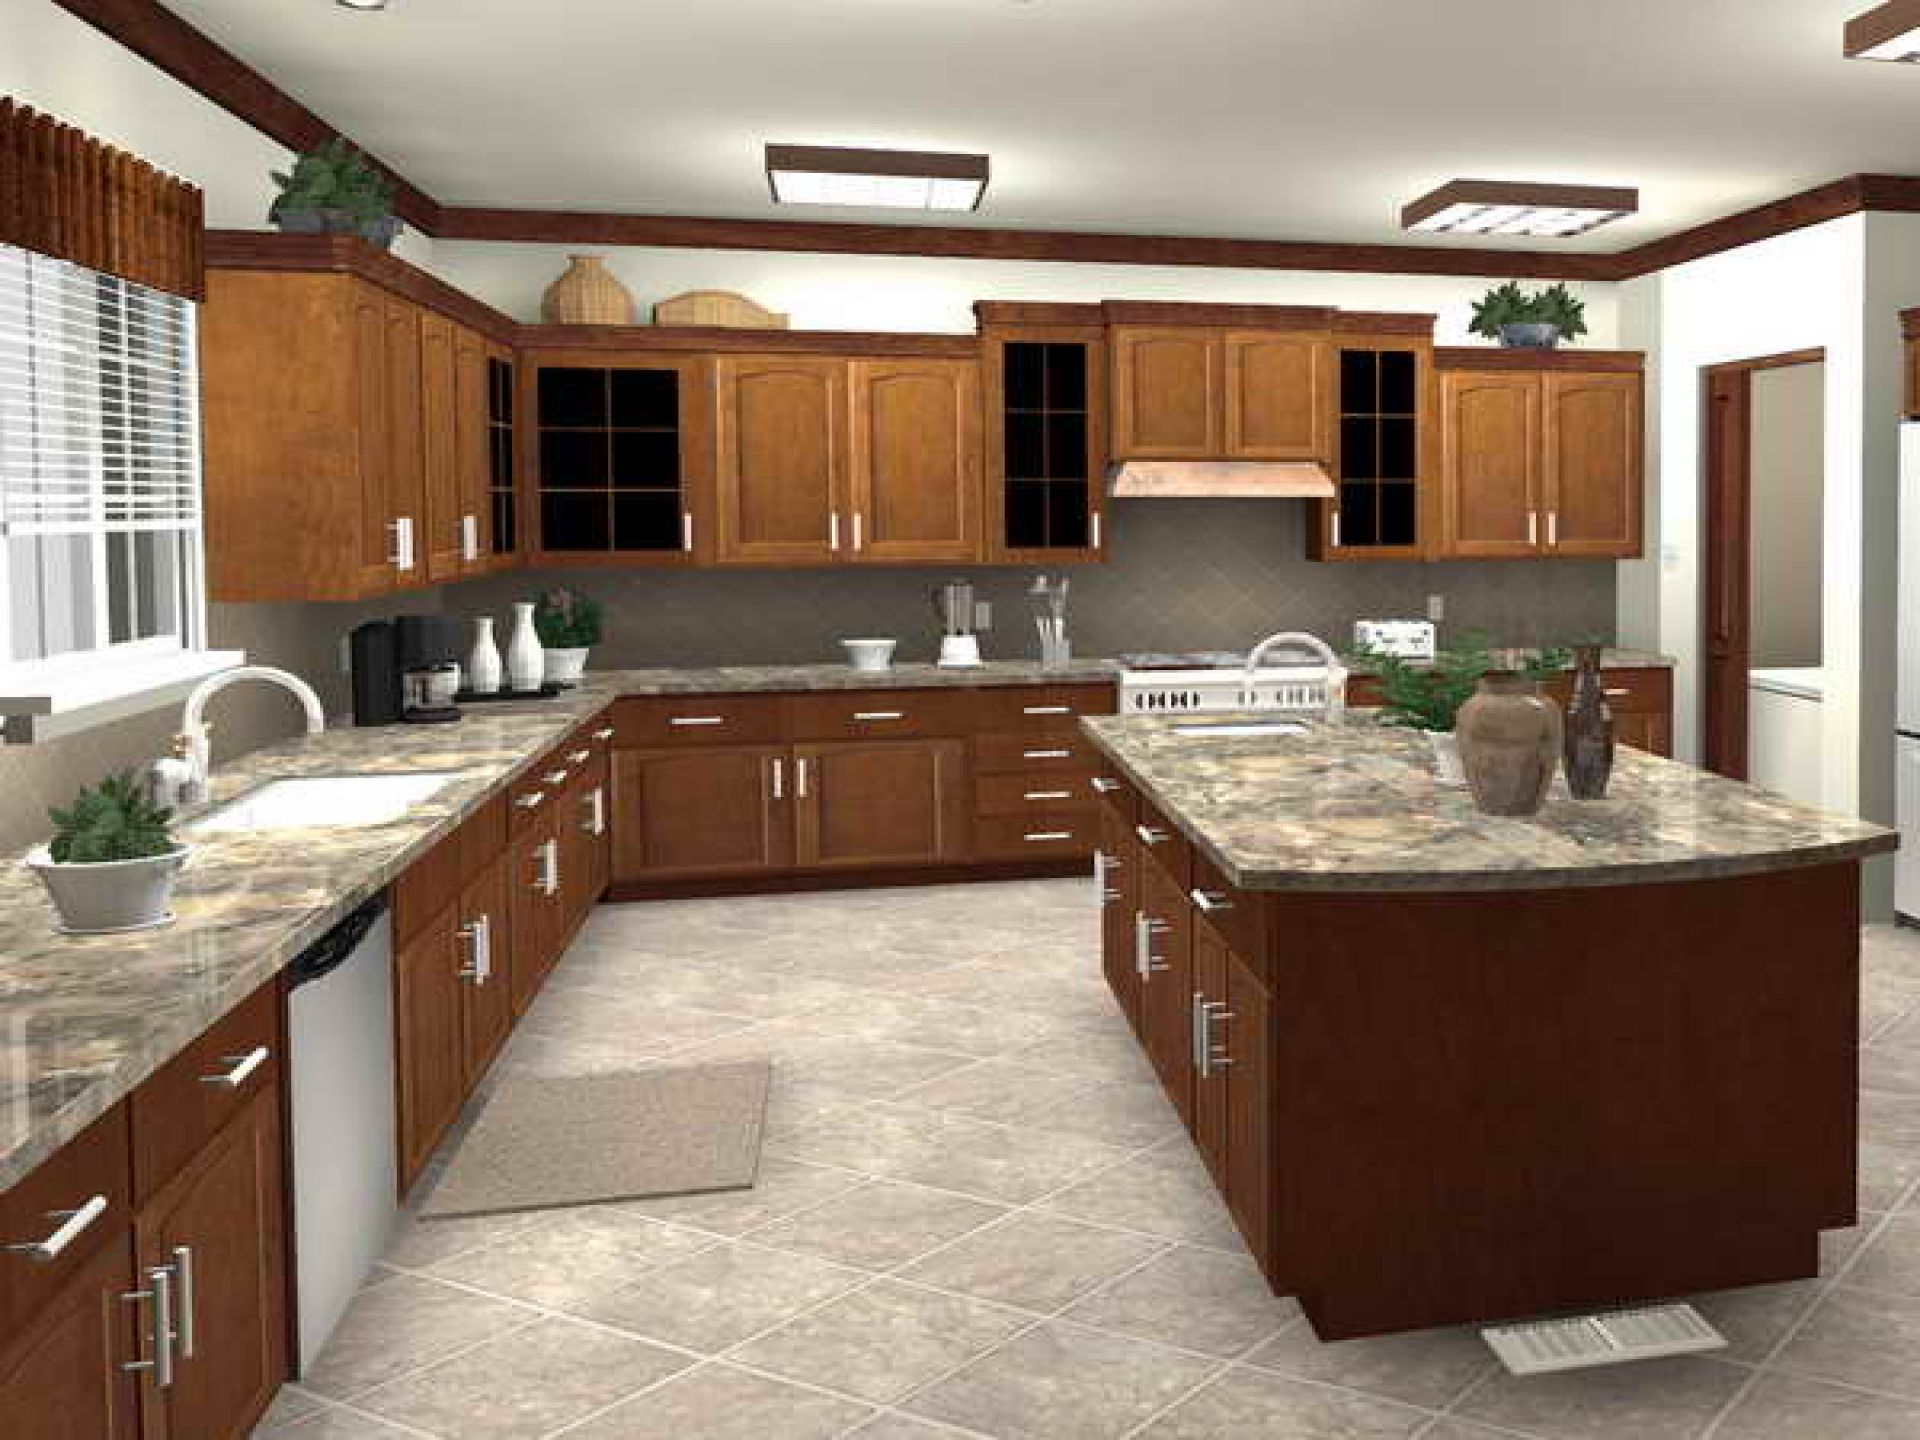 Awesome Effective Kitchen Floor Plan With L Shaped Cabinets With Island Connected  To Other Rooms